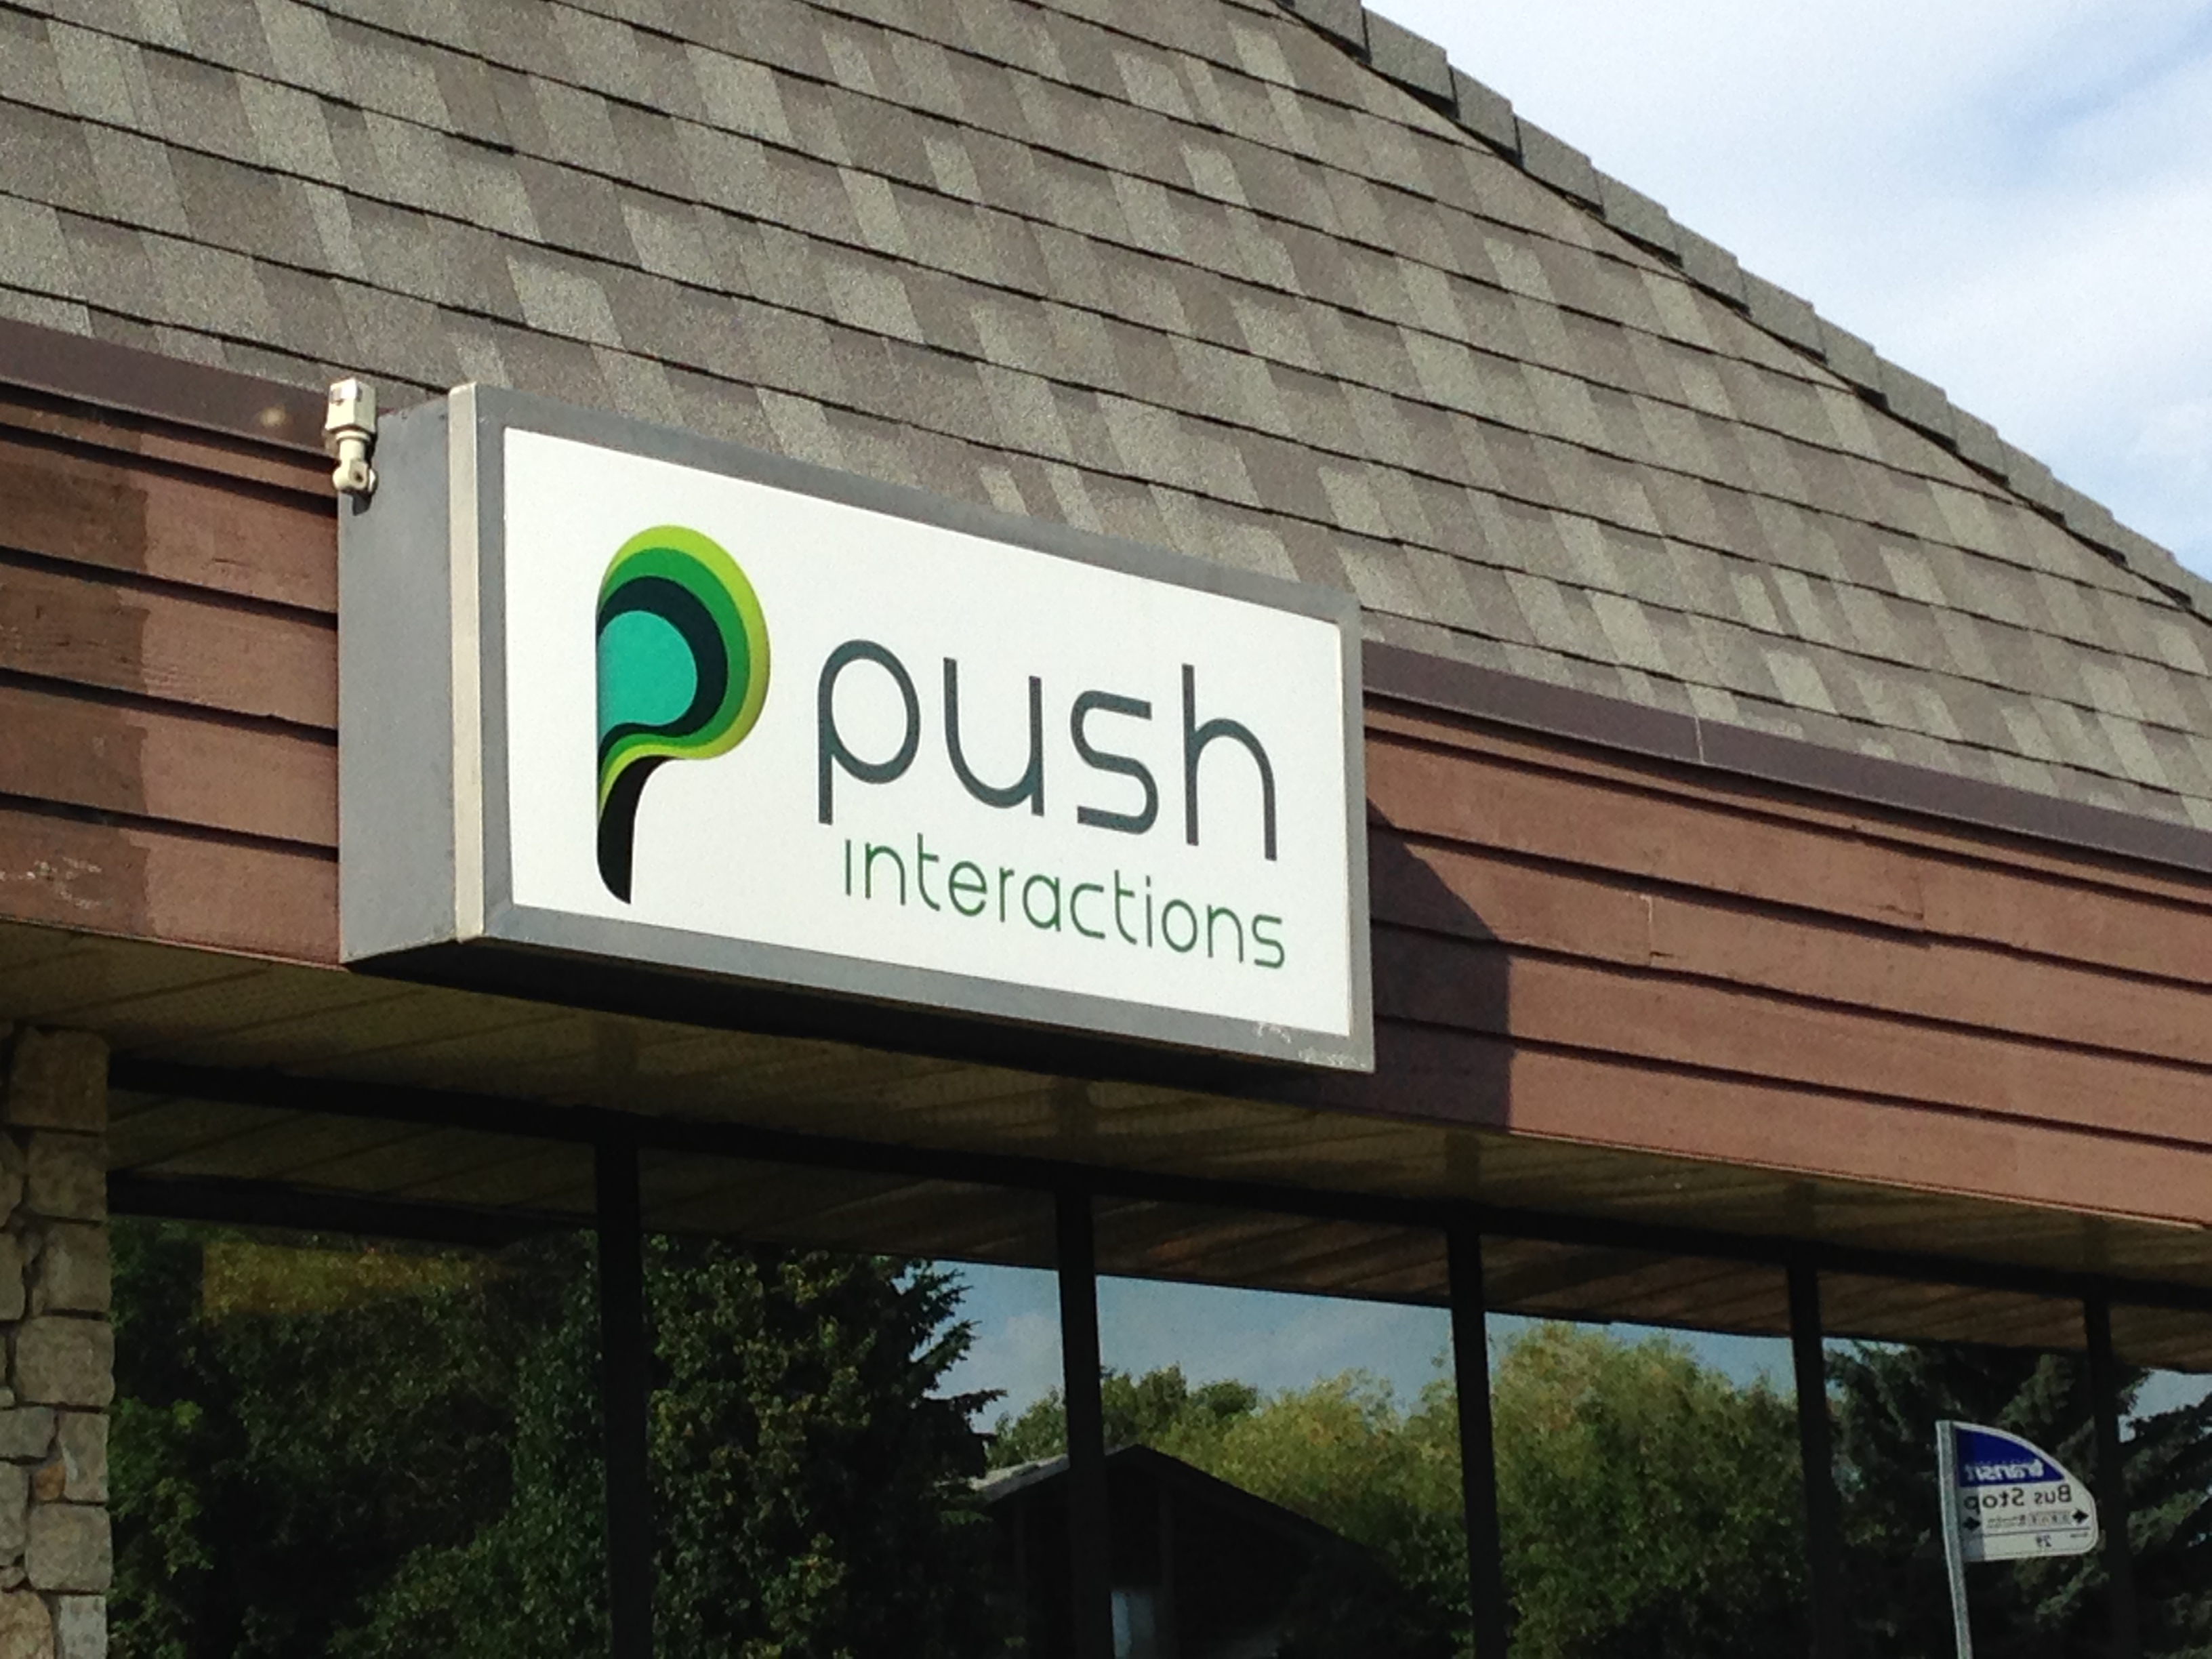 Our brand new sign on the outside of our building. Honk if you approve!